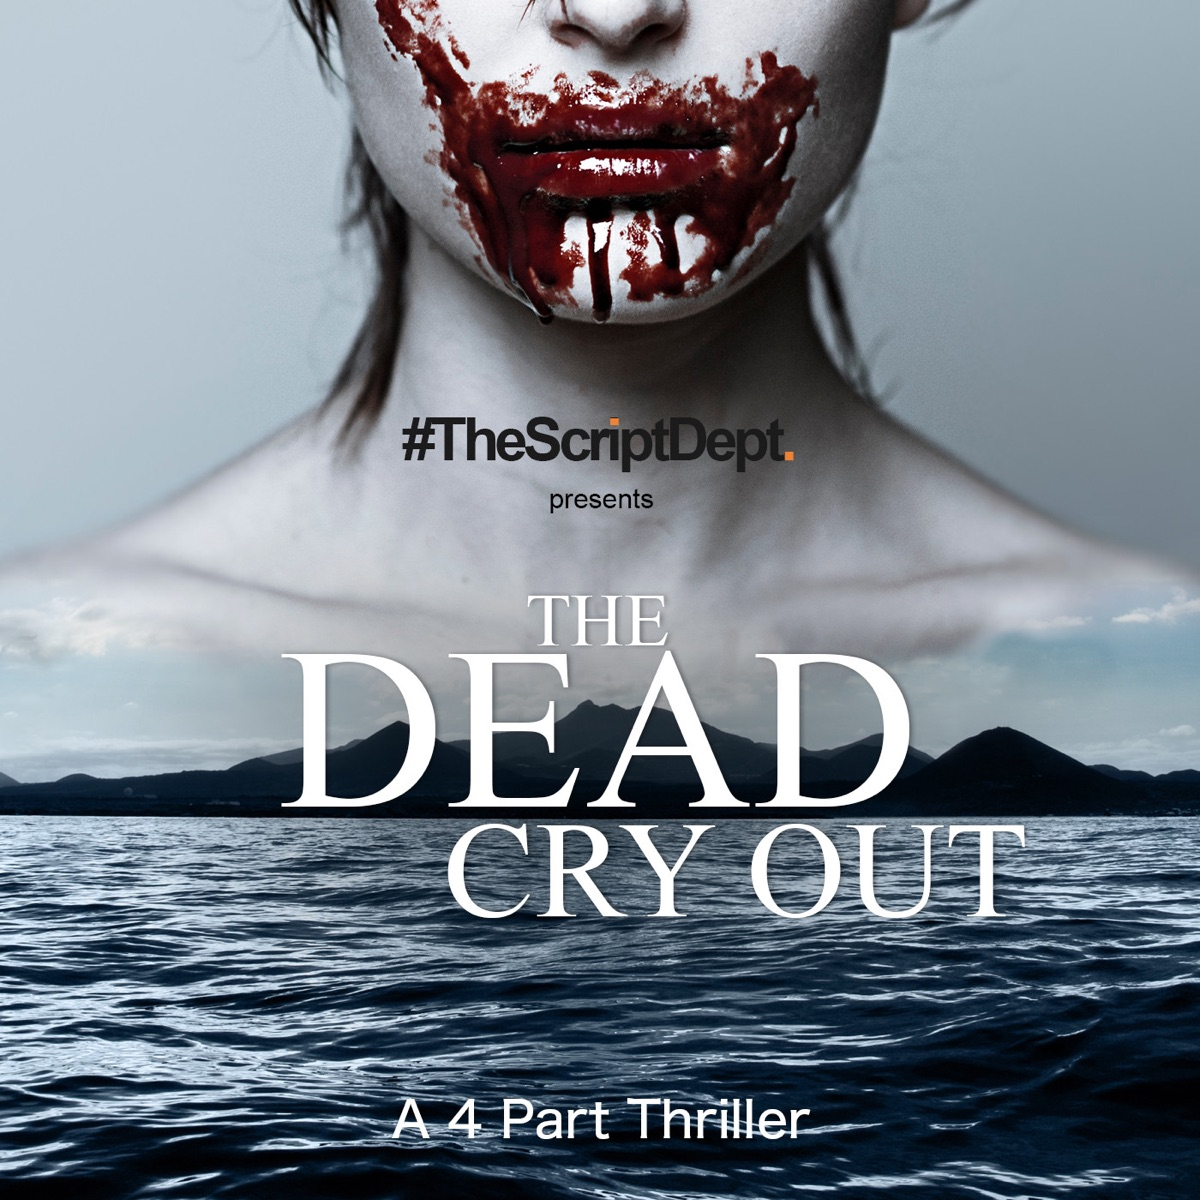 #TheScriptDept: The Dead Cry Out